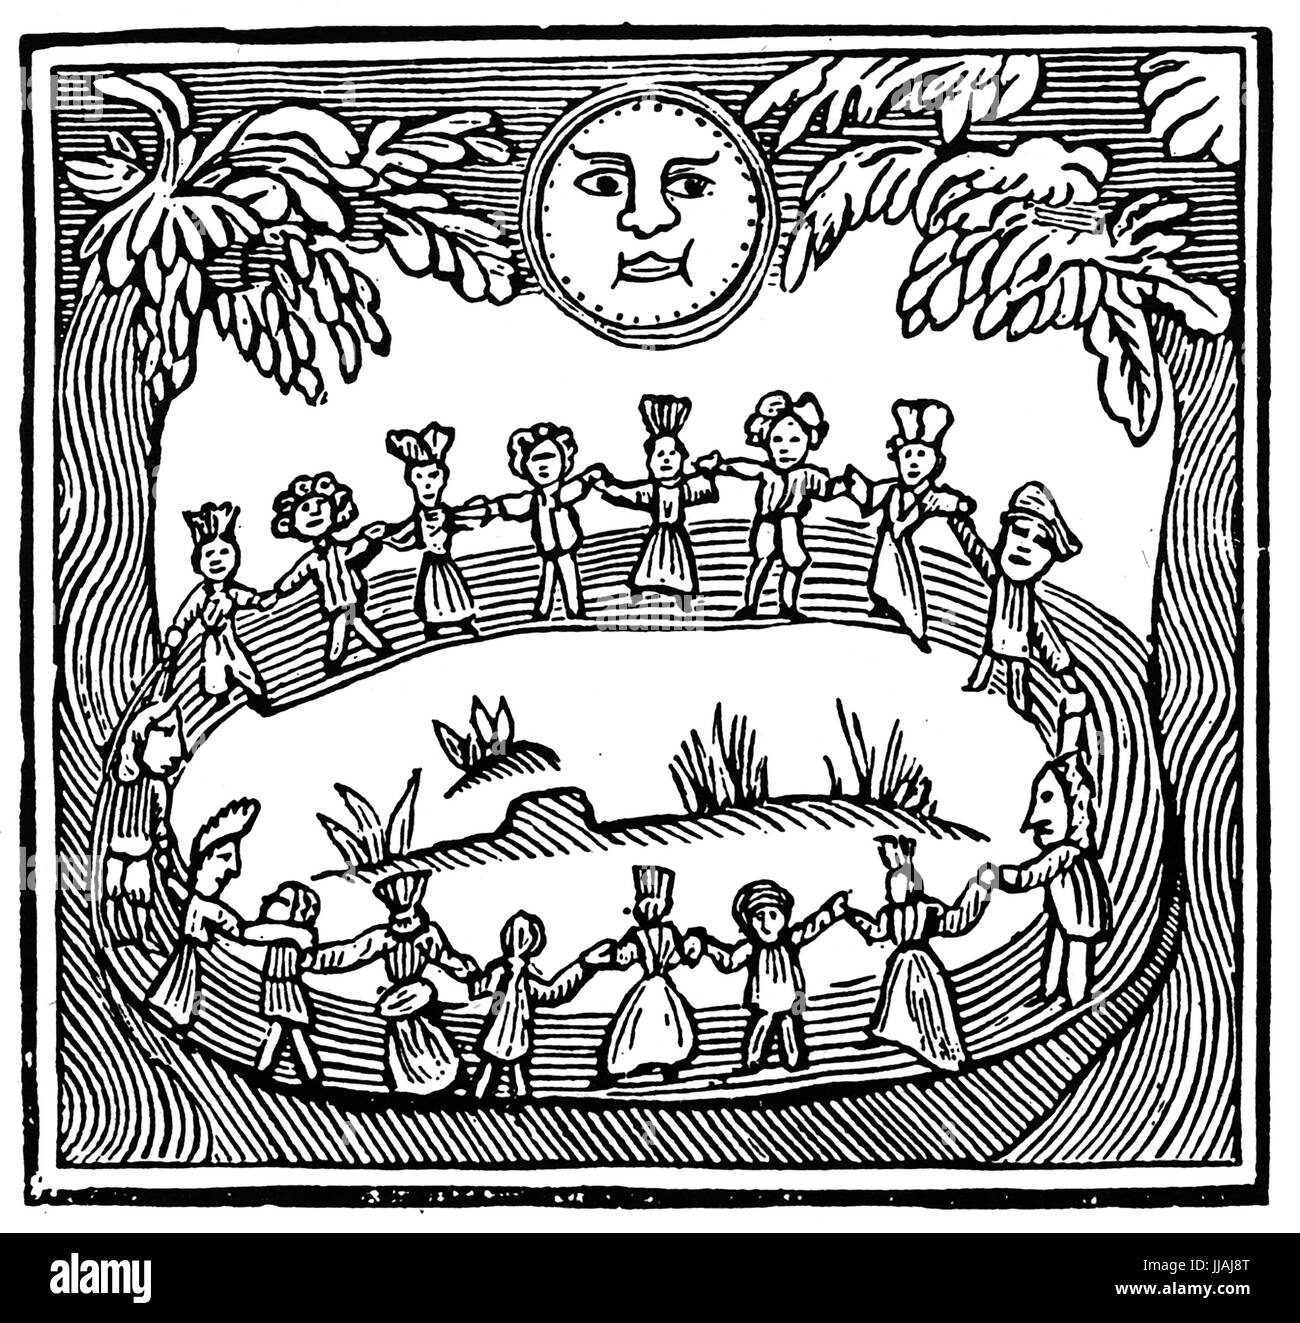 WITCHCRAFT Woodcut showing witches dancing in a forest from The Witch of the Woodlands published in 1655 - Stock Image